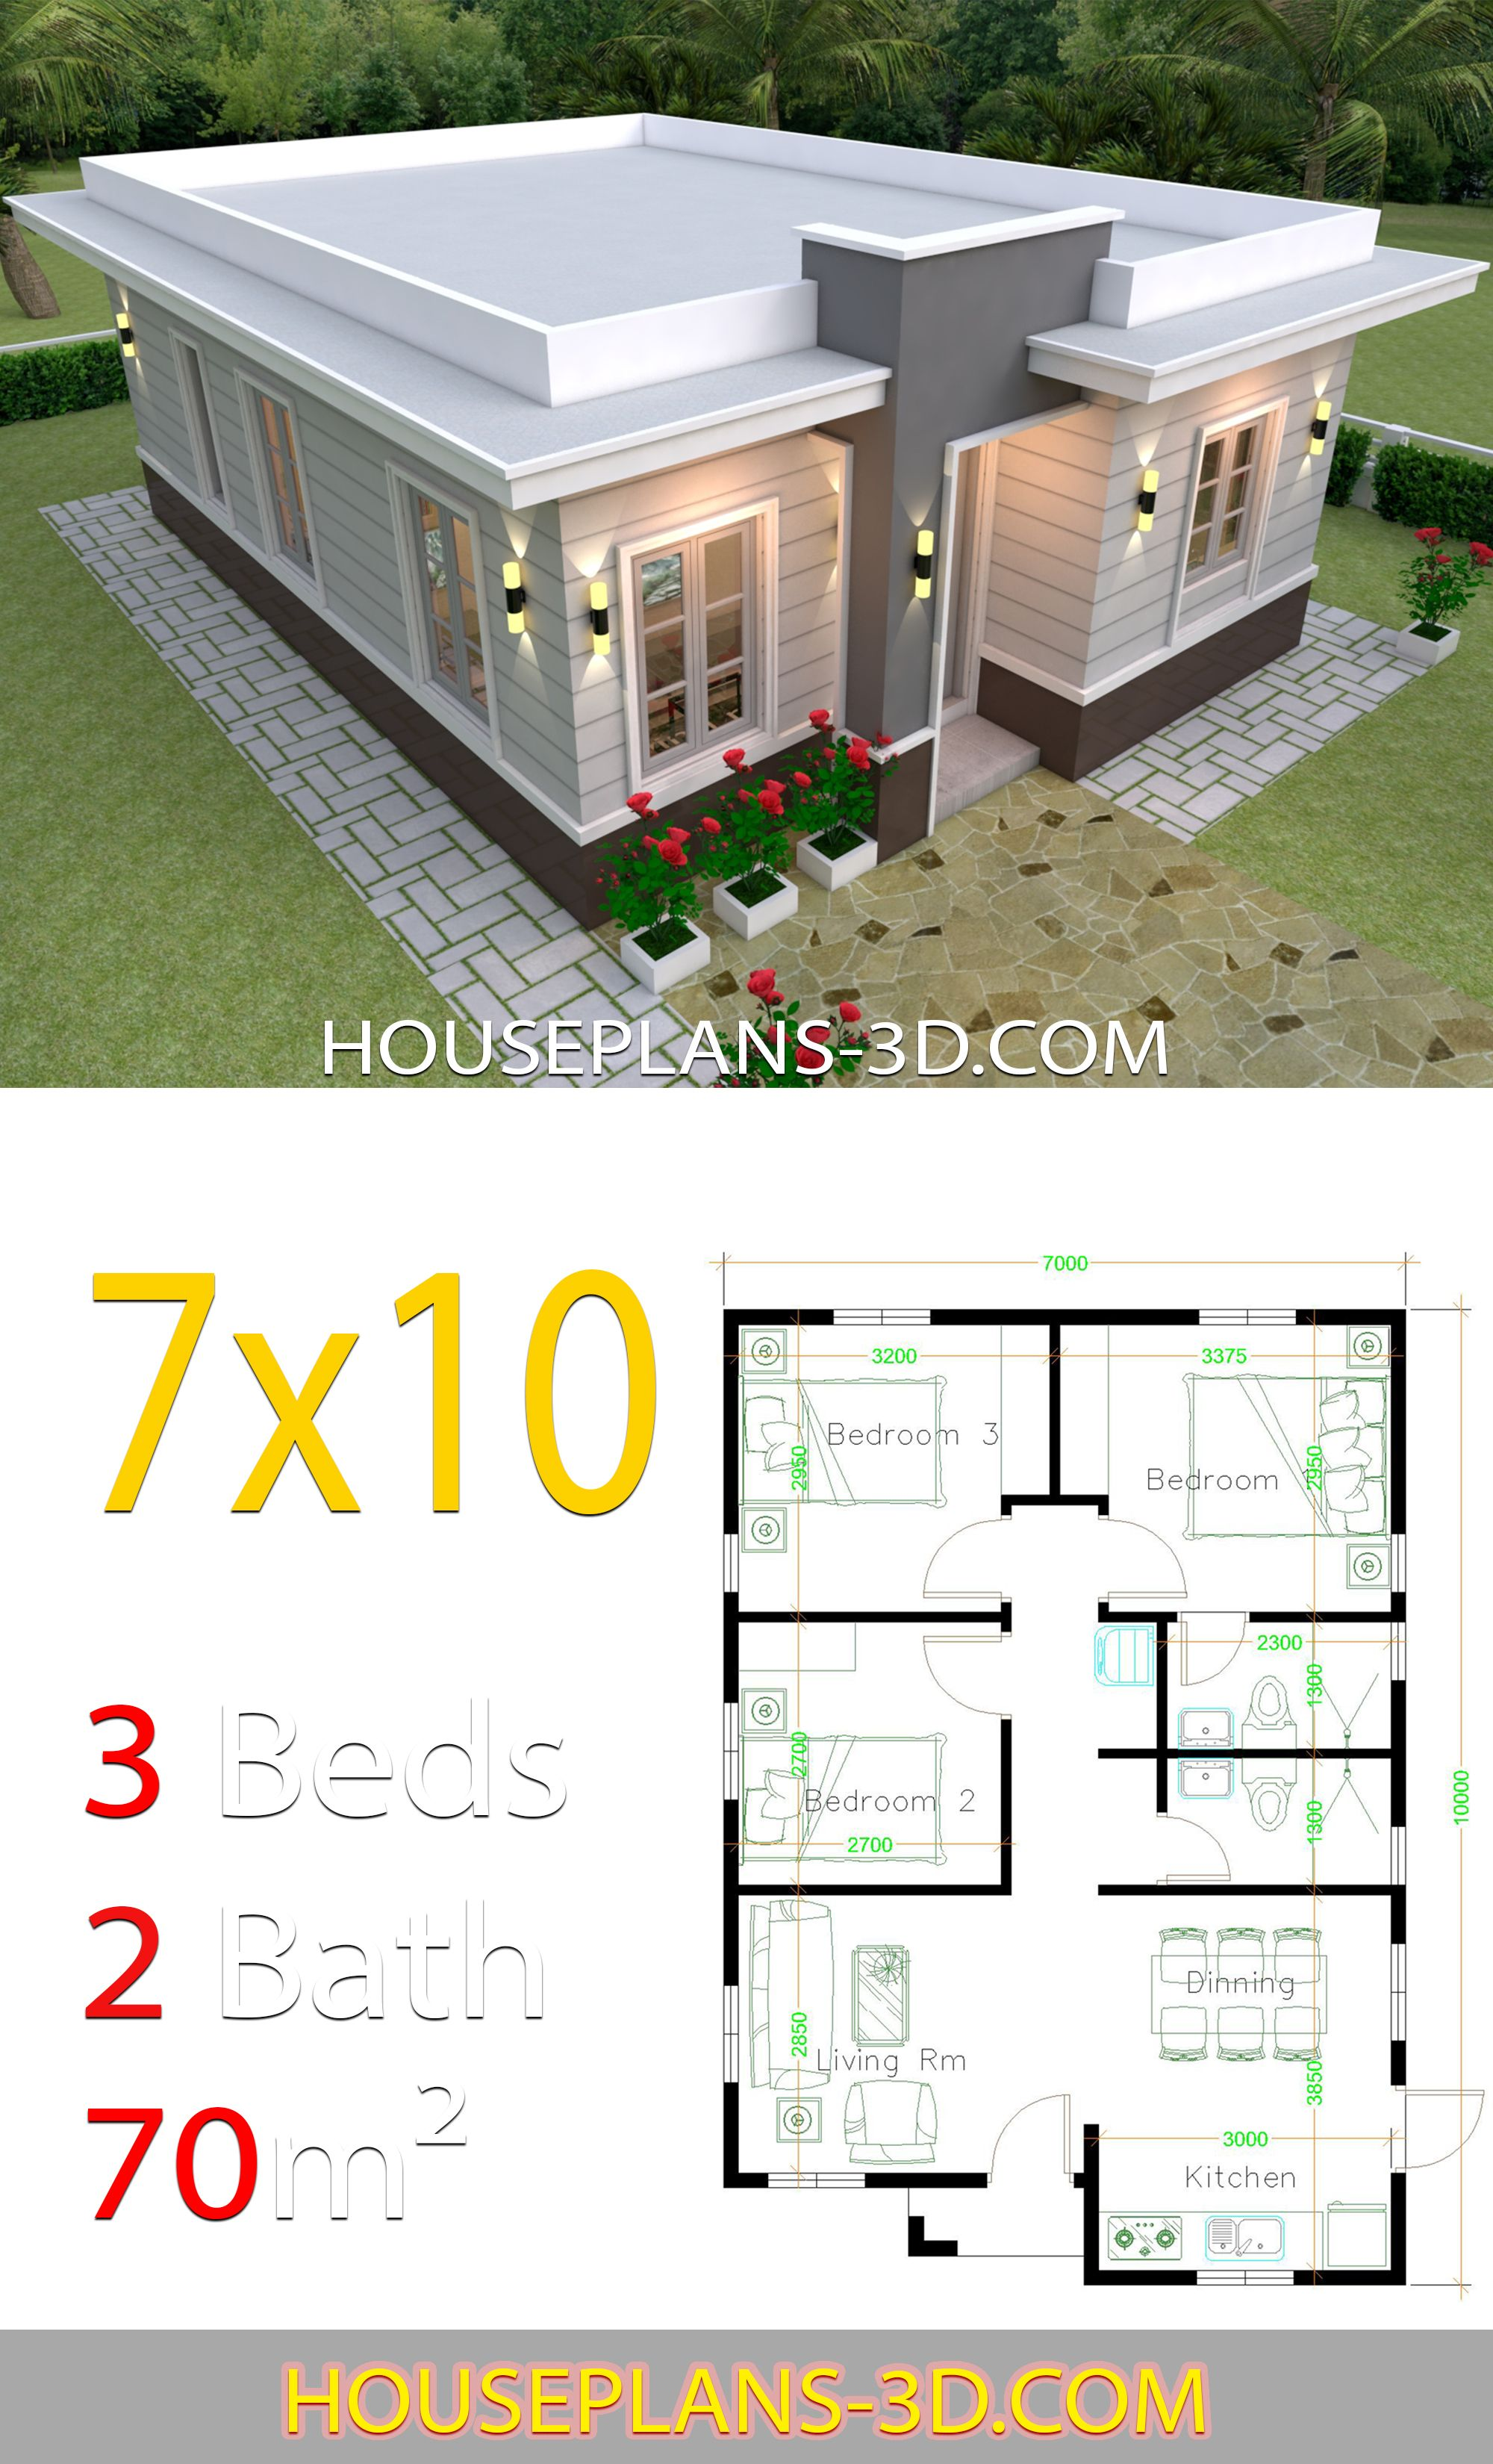 House Design 7x10 With 3 Bedrooms Terrace Roof En 2020 Plans De